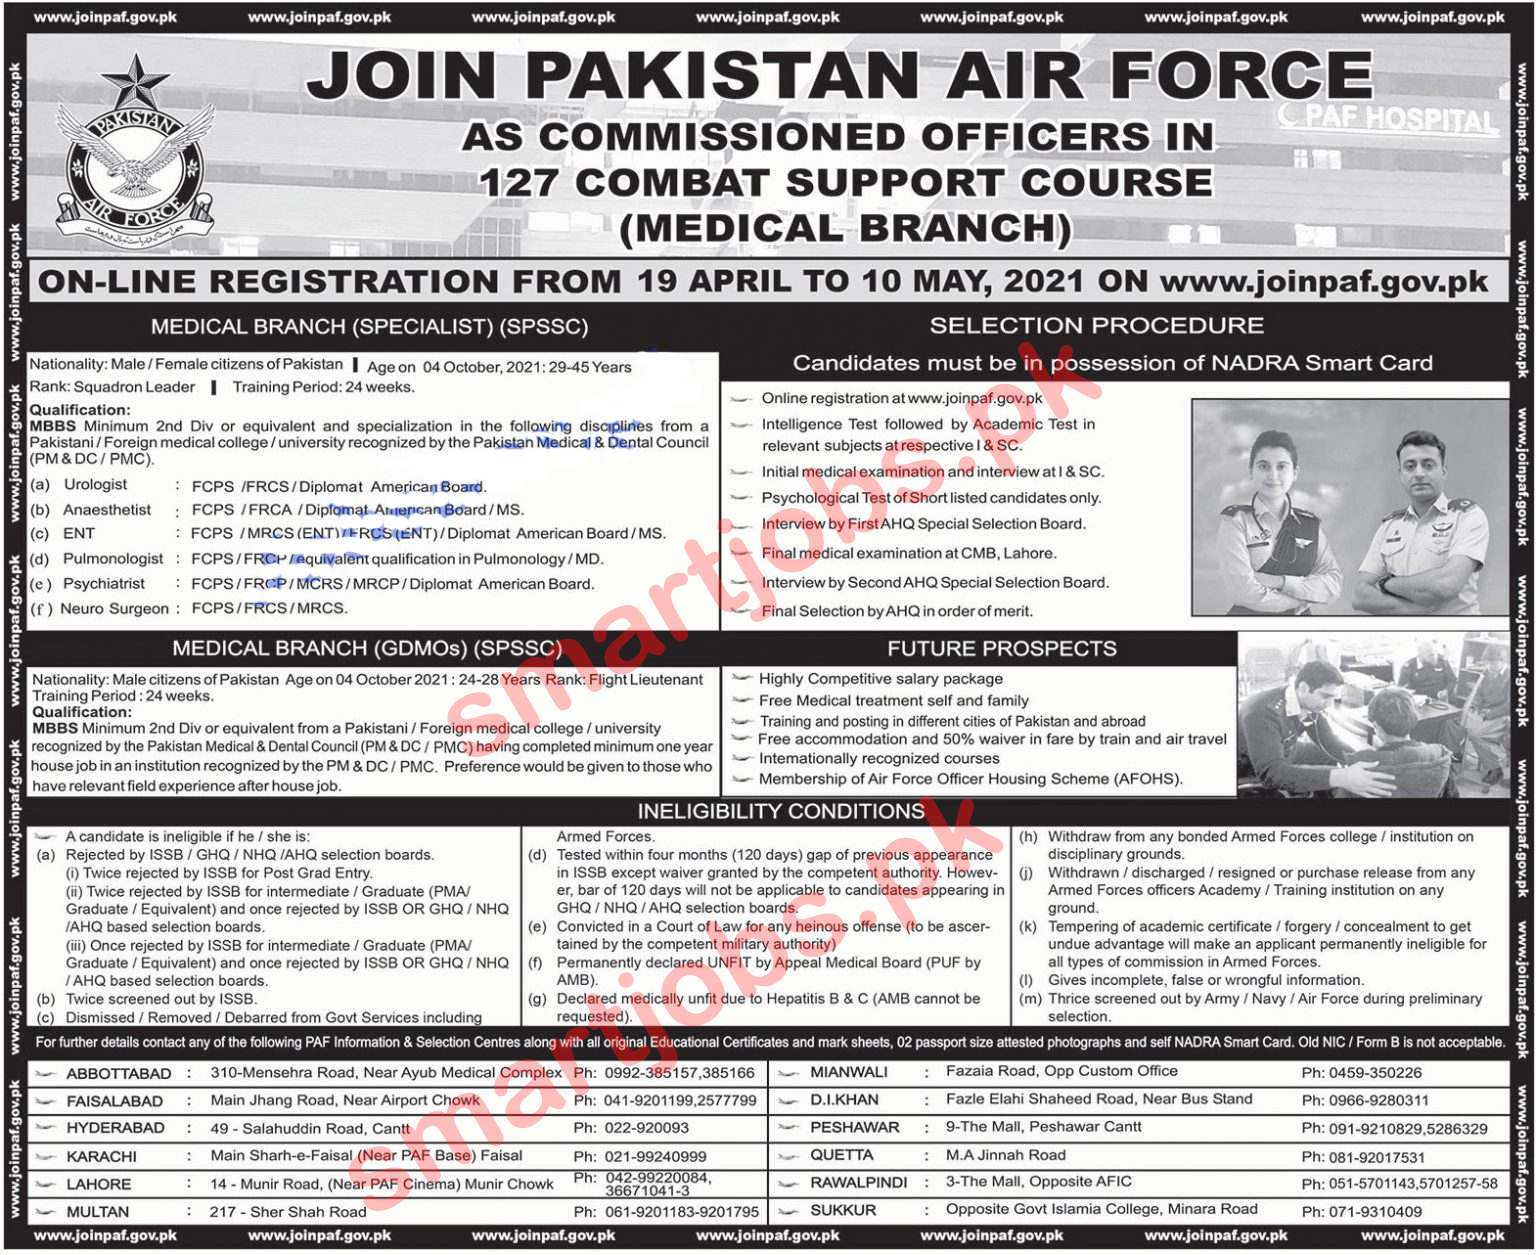 Join Pakistan Air Force PAF Jobs 2021 as Commissioned Officer